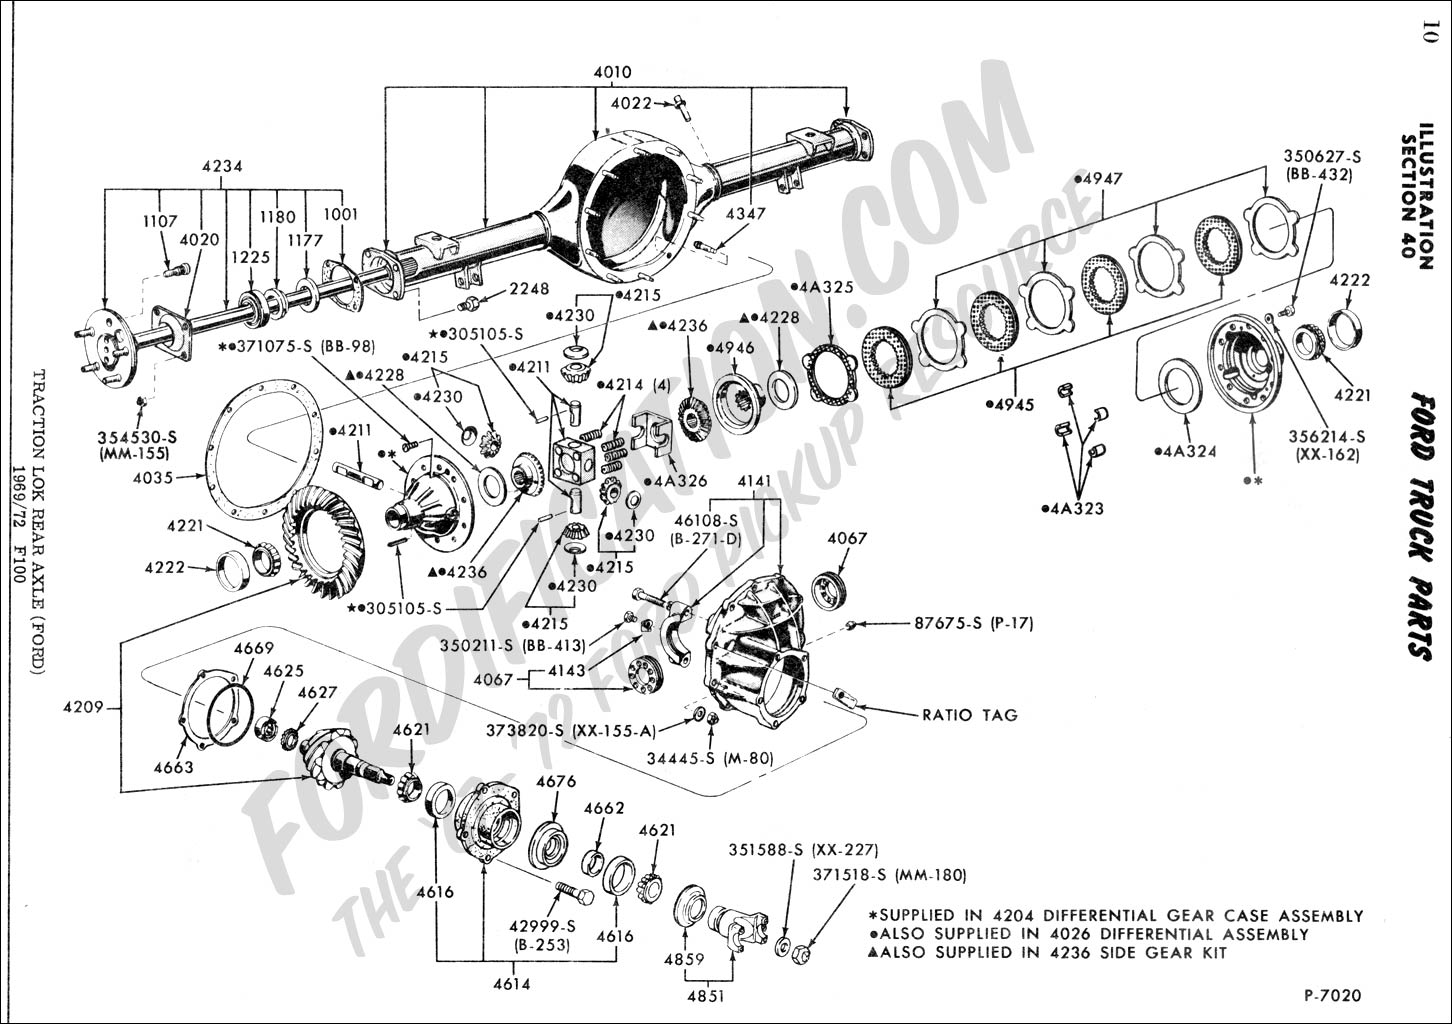 F250 Rear Axle Diagram on jeep liberty custom parts